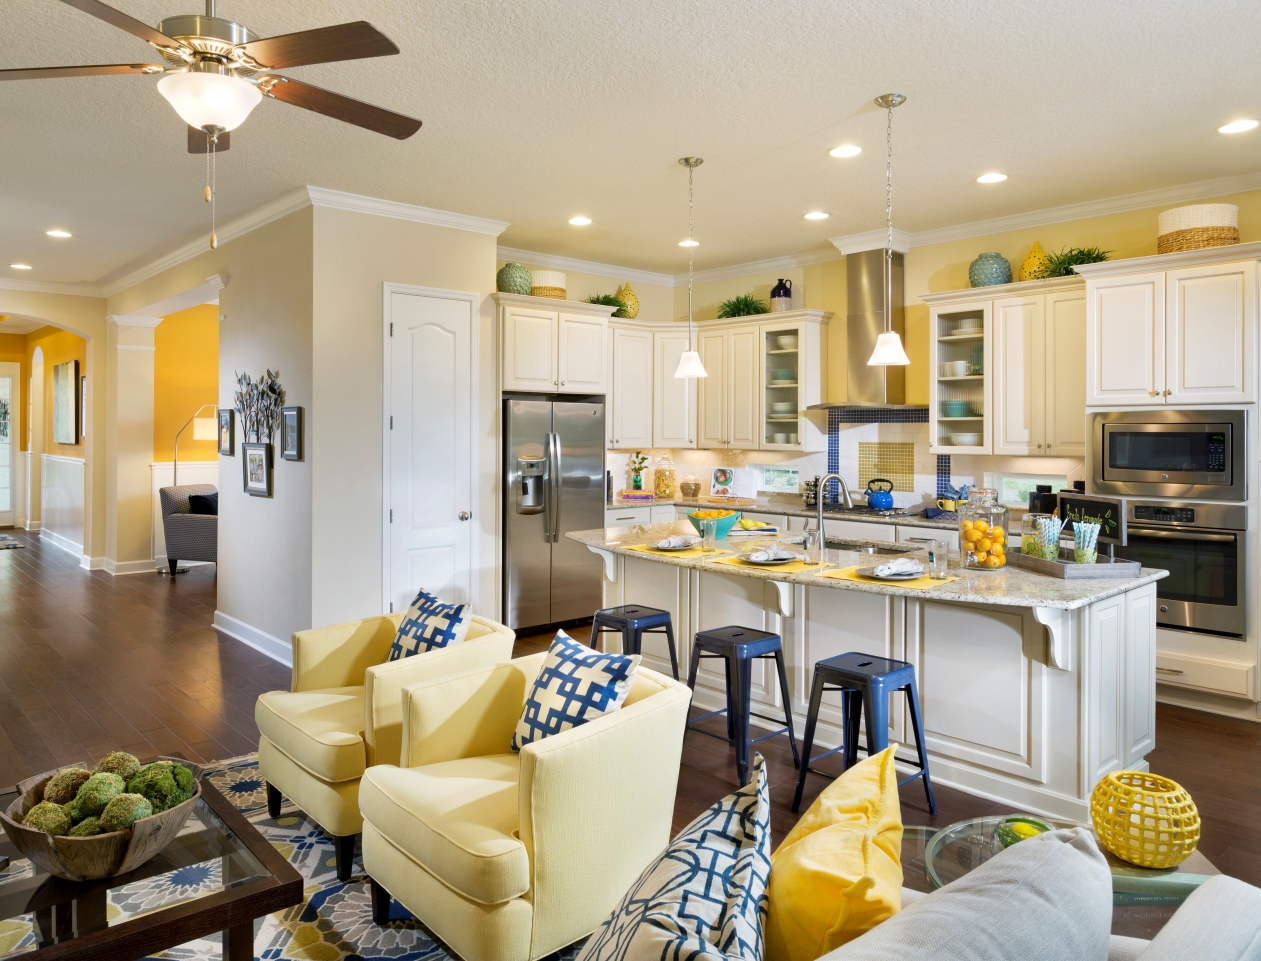 David Weekley Homes at Nocatee Town Center